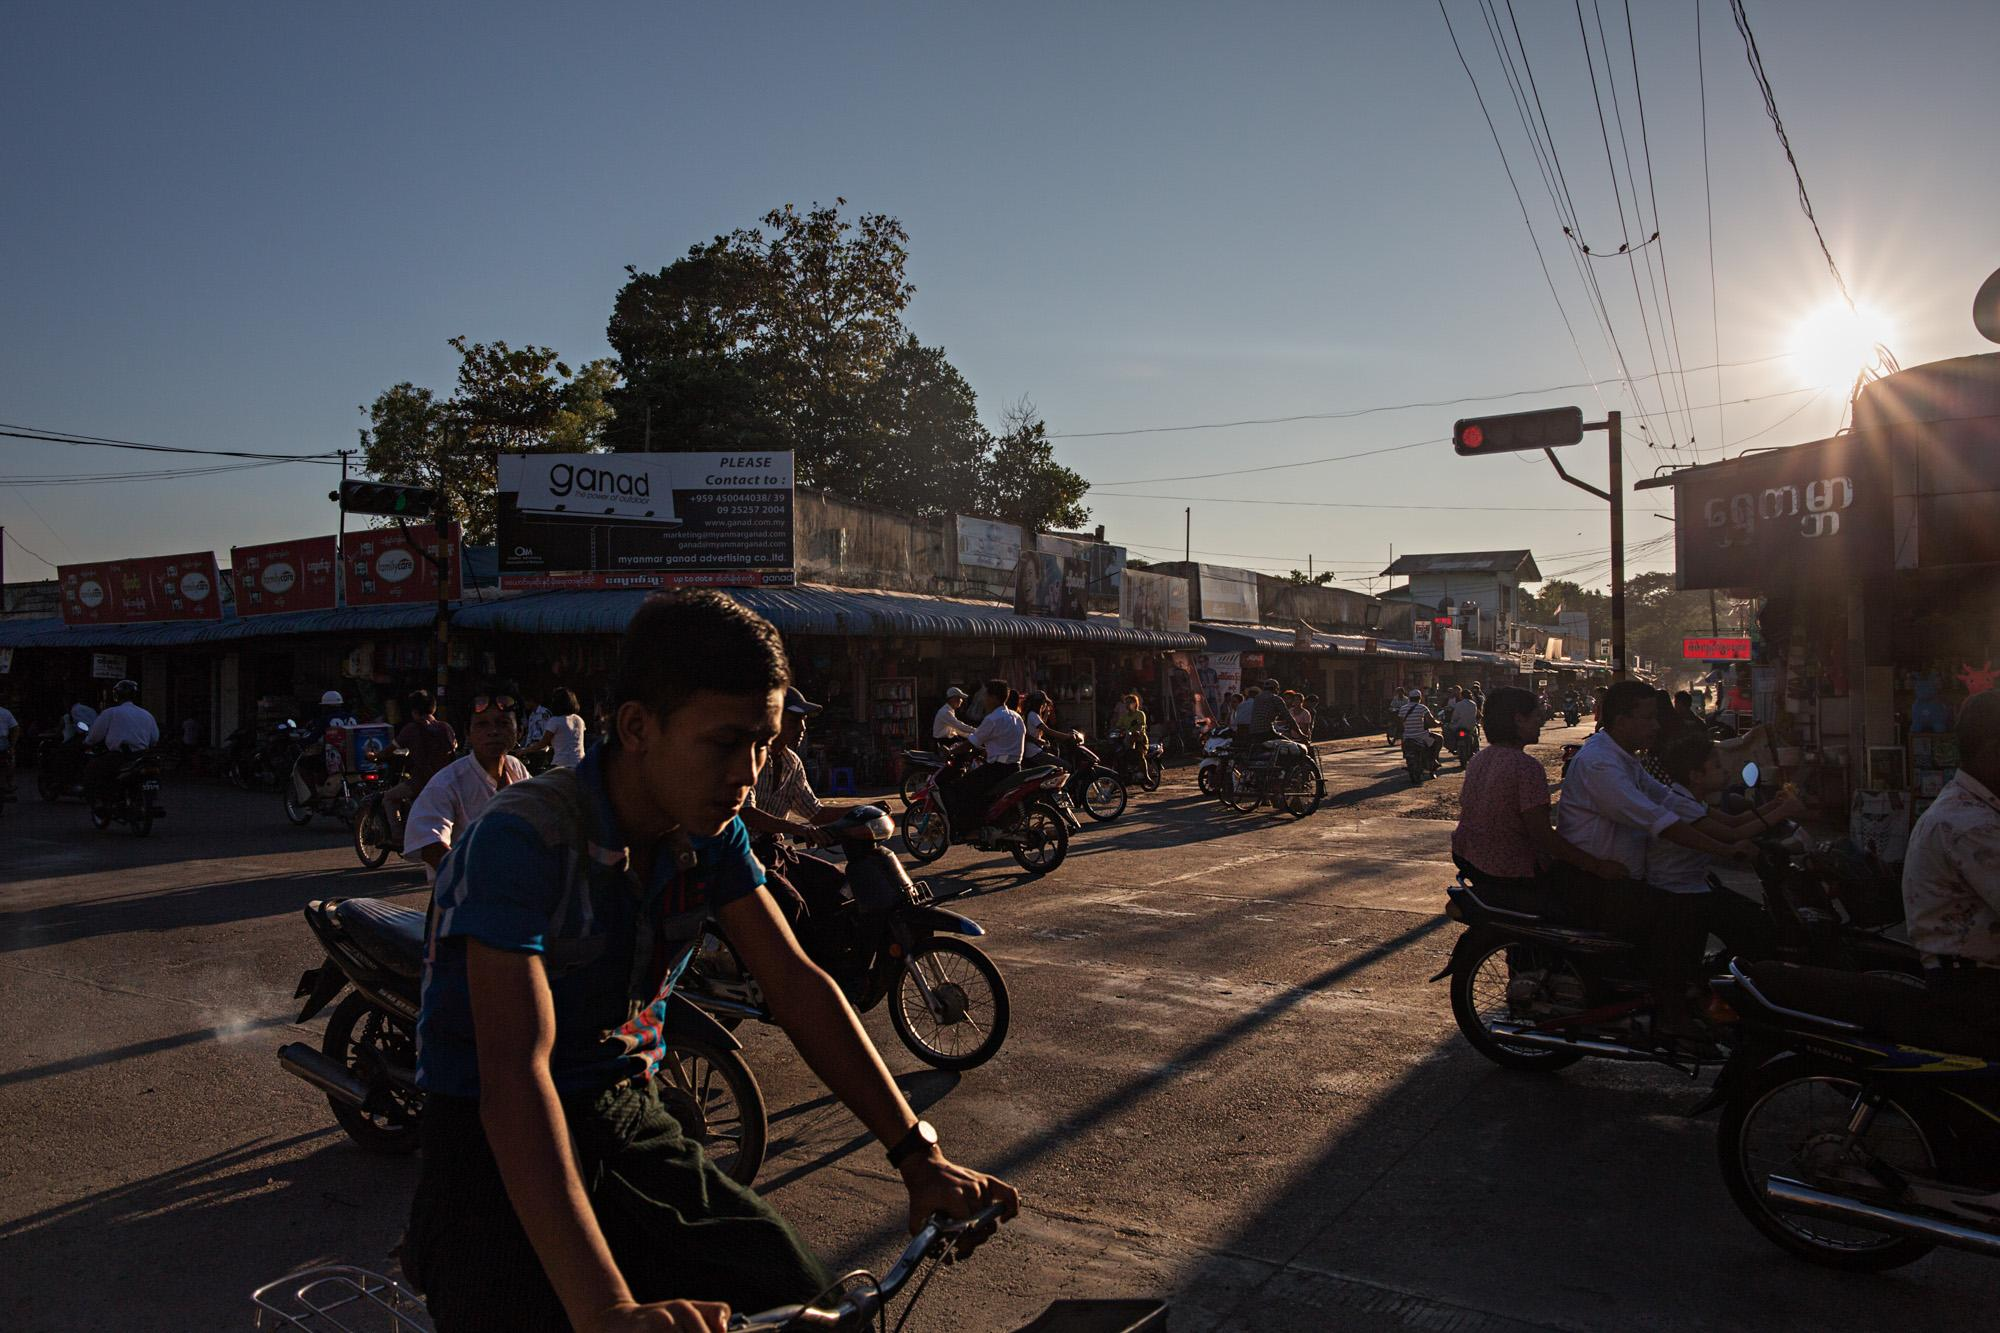 Cyclists and motorbikes make their way through the sleepy town of Hinthada, Myanmar.